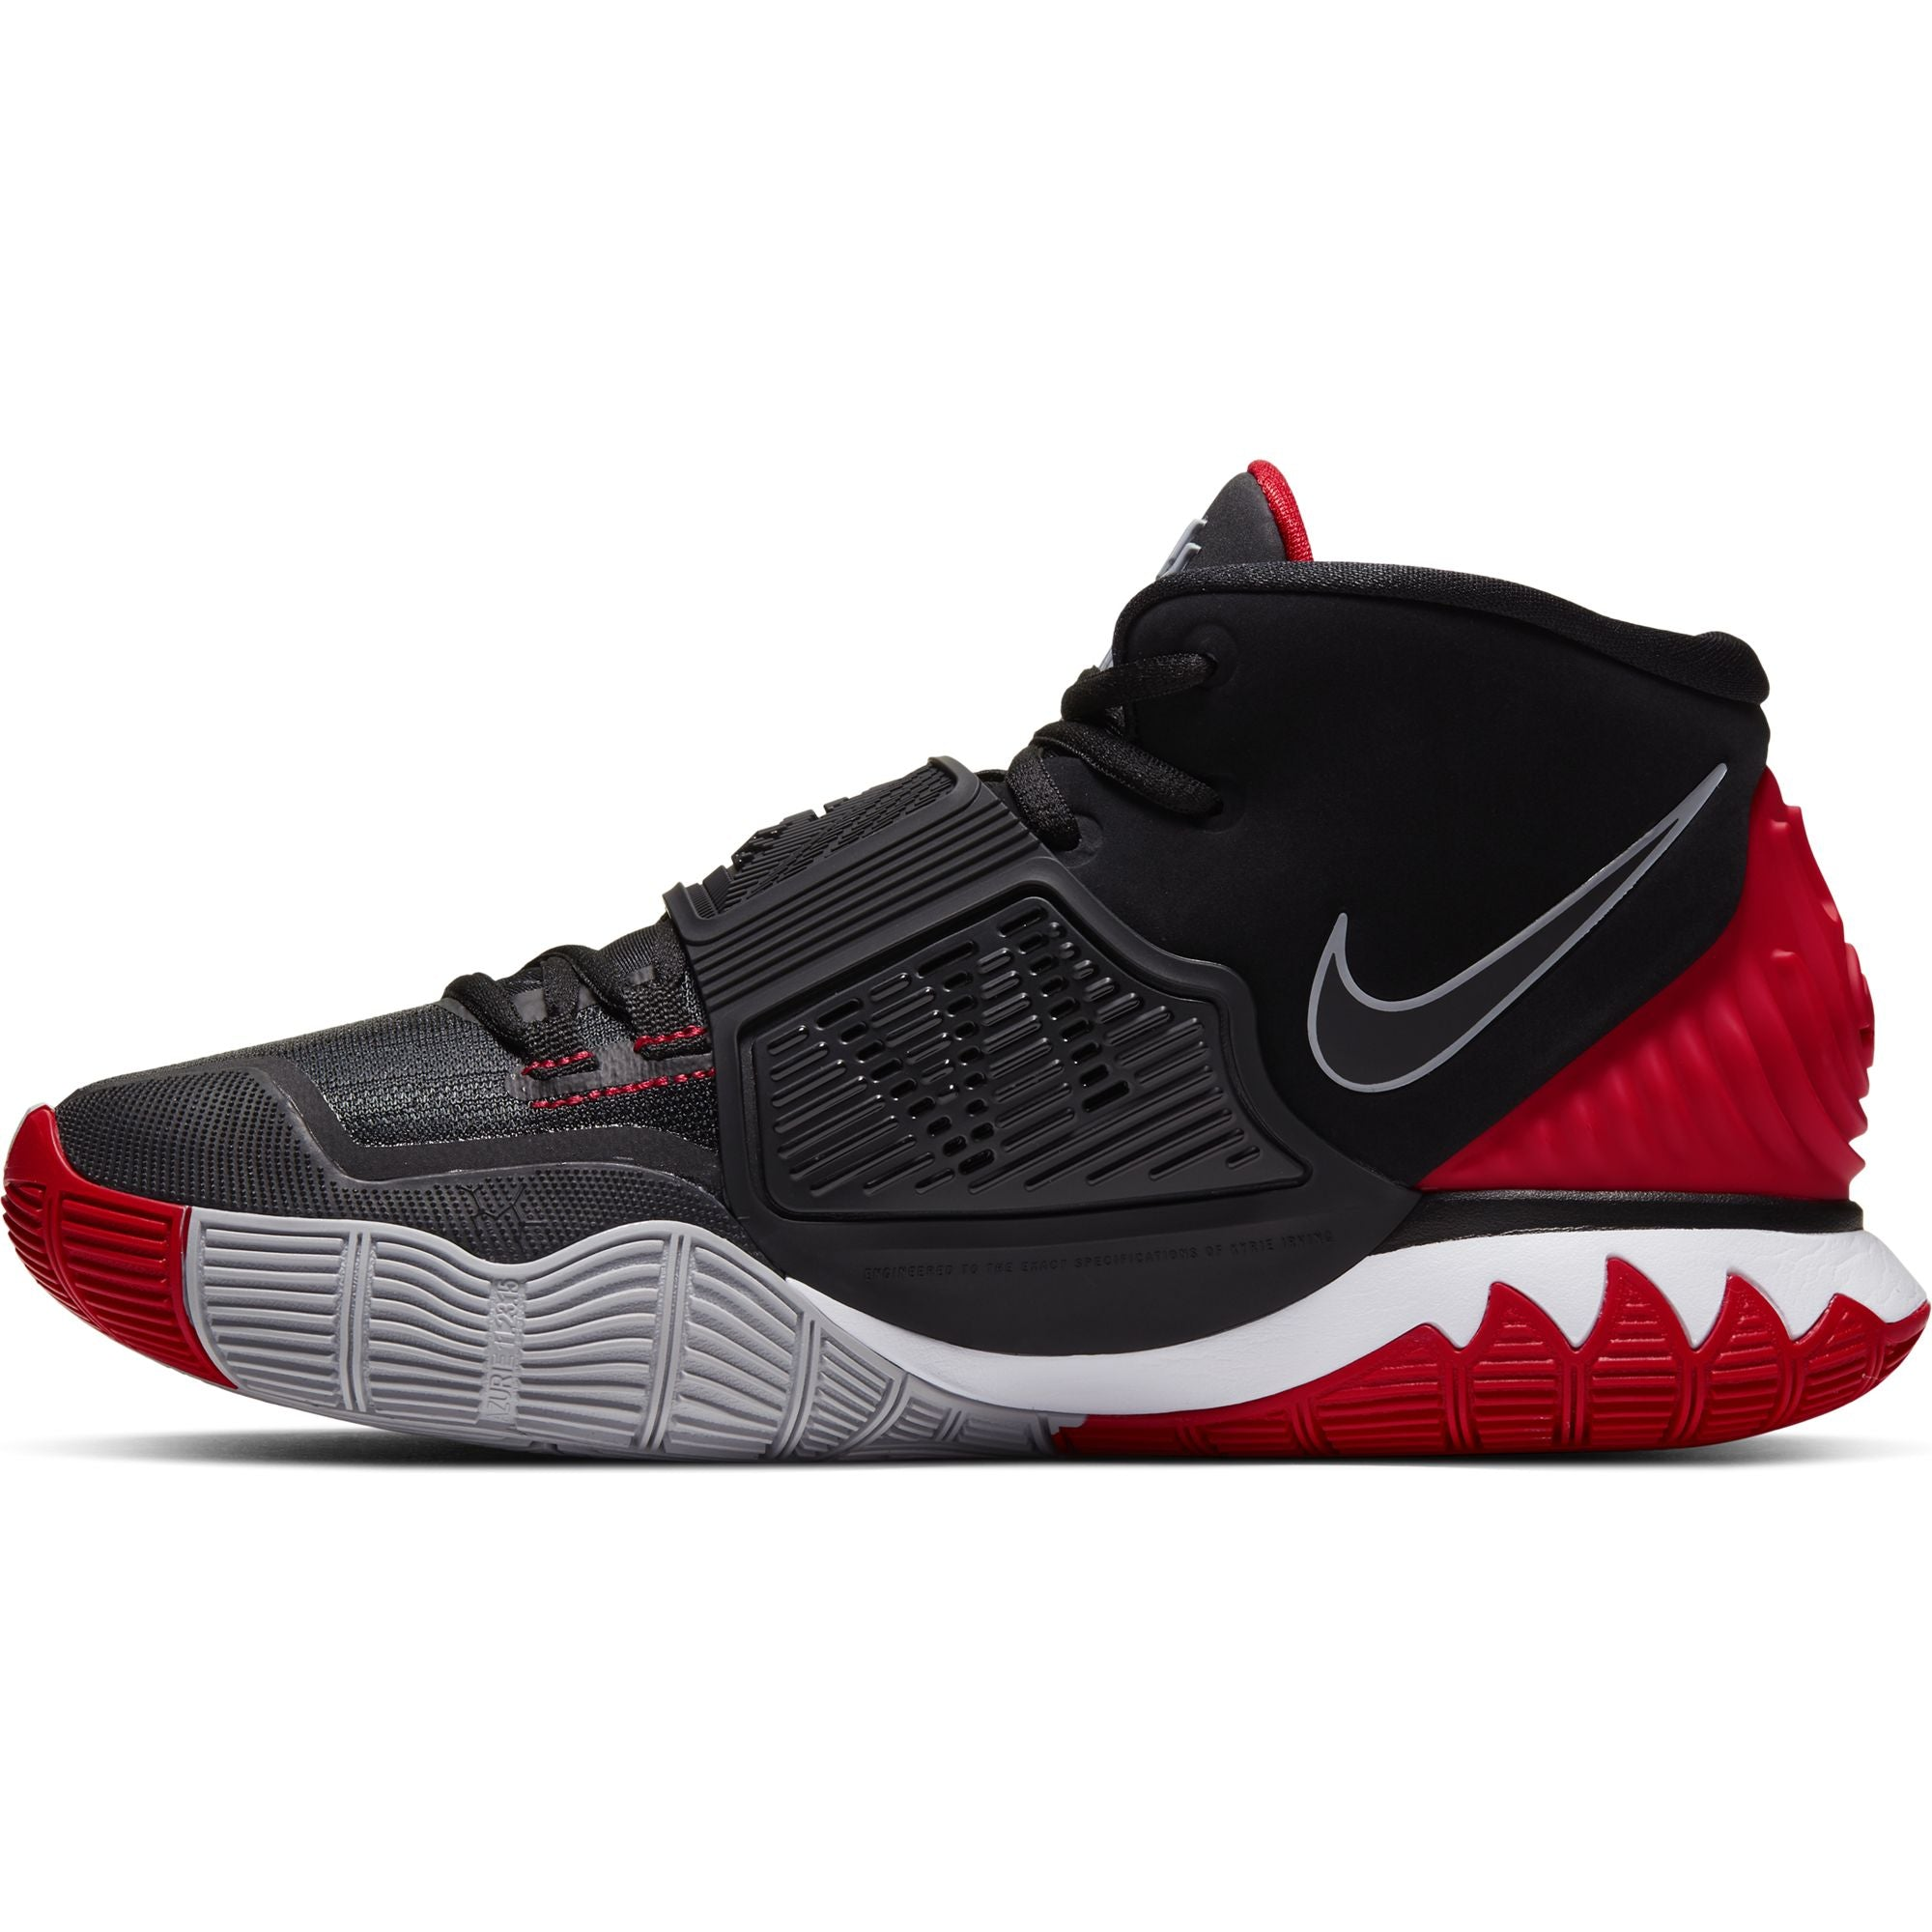 Nike Kyrie 6 Basketball Boot/shoe - Black/White/Red